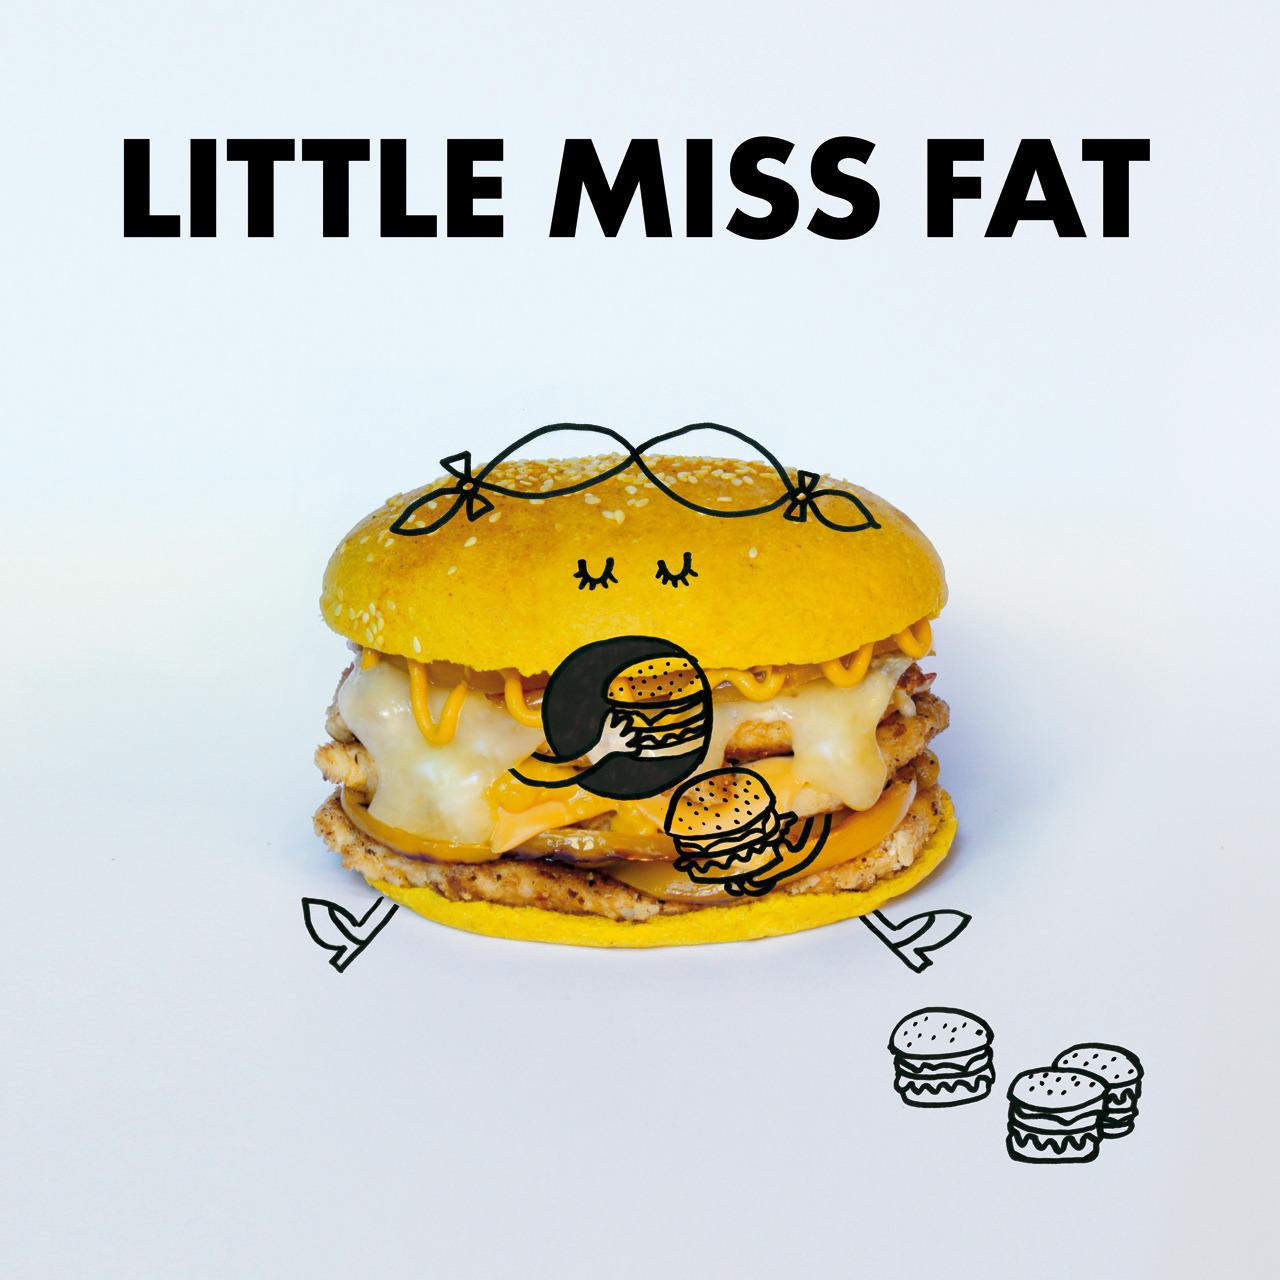 fatandfuriousburger:  Little Miss Fat Burger. Bun au curry. Aiguillettes de poulet panées. Poivrons jaunes. Cheddar, cantal, emmental fondus. Moutarde French's et moutarde Colman's.